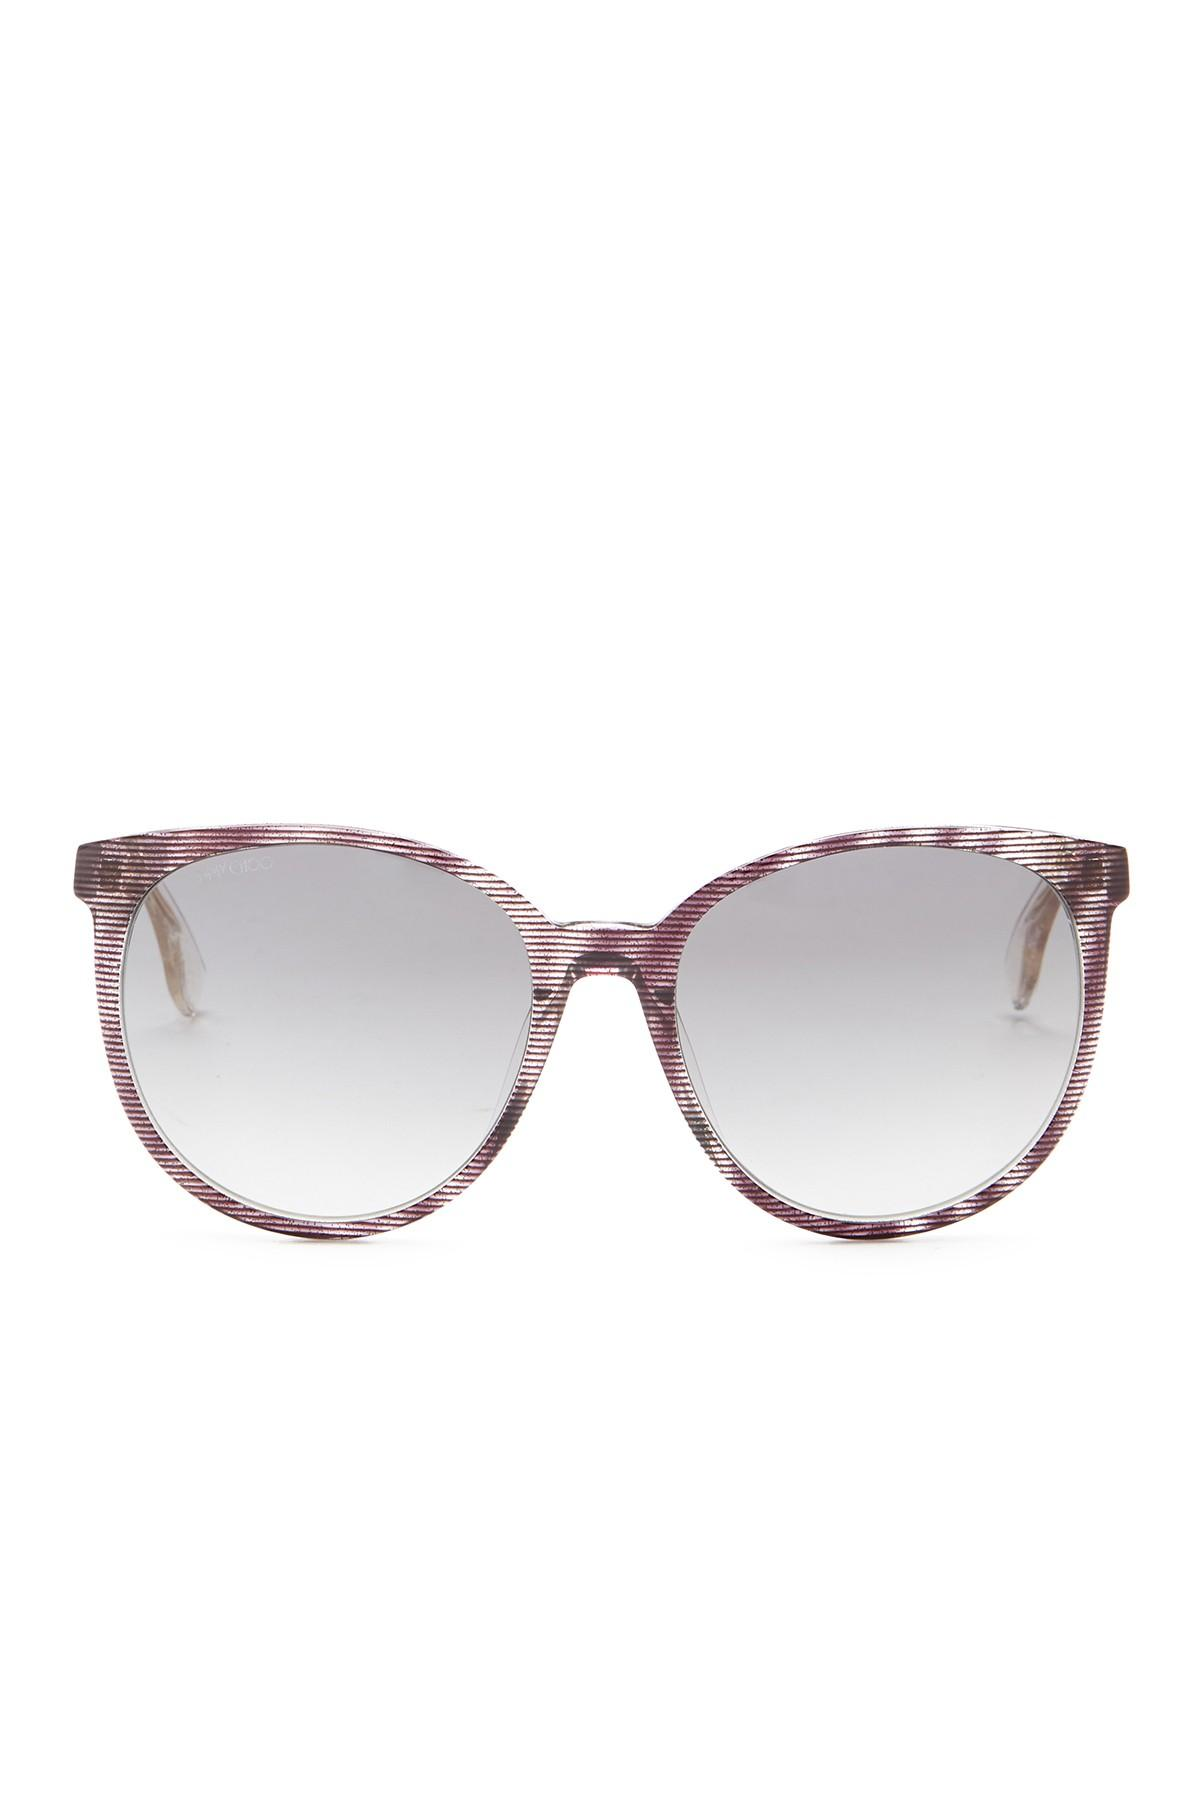 cfec81a87cb Lyst - Jimmy Choo Unisex Reece Rounded Sunglasses